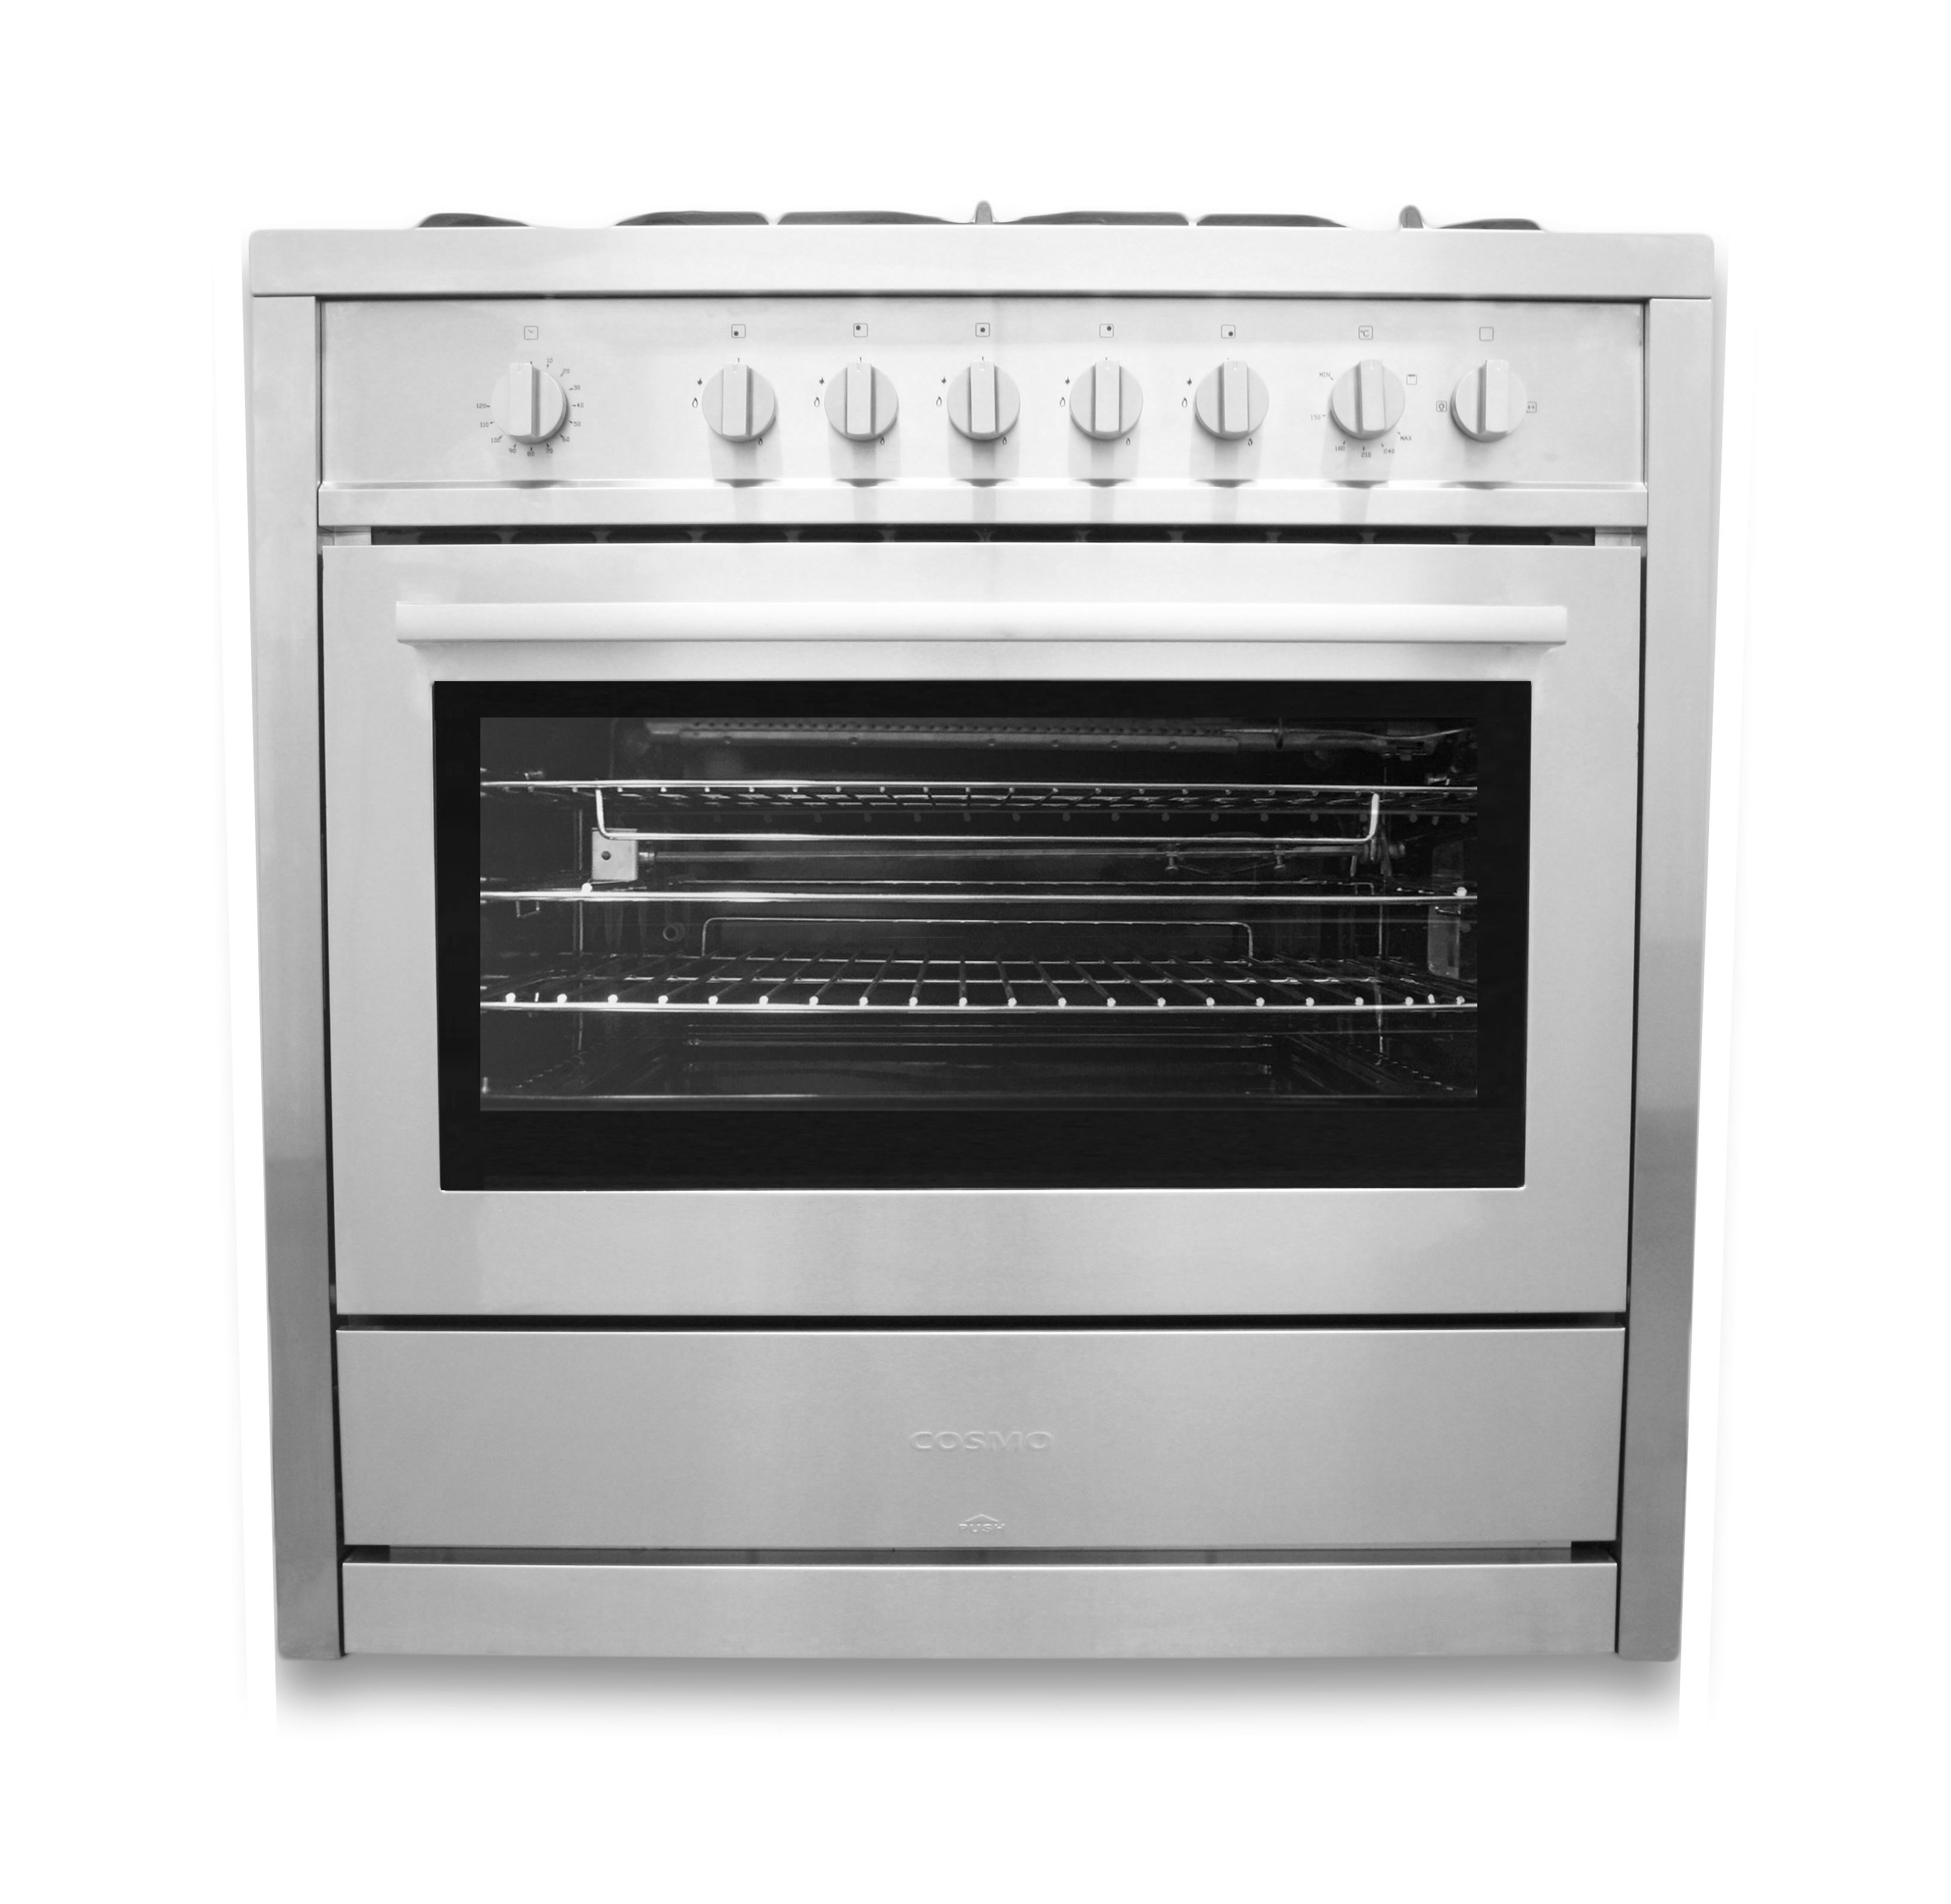 36 In 3 8 Cu Ft Stainless Steel Gas Range With Rotisserie